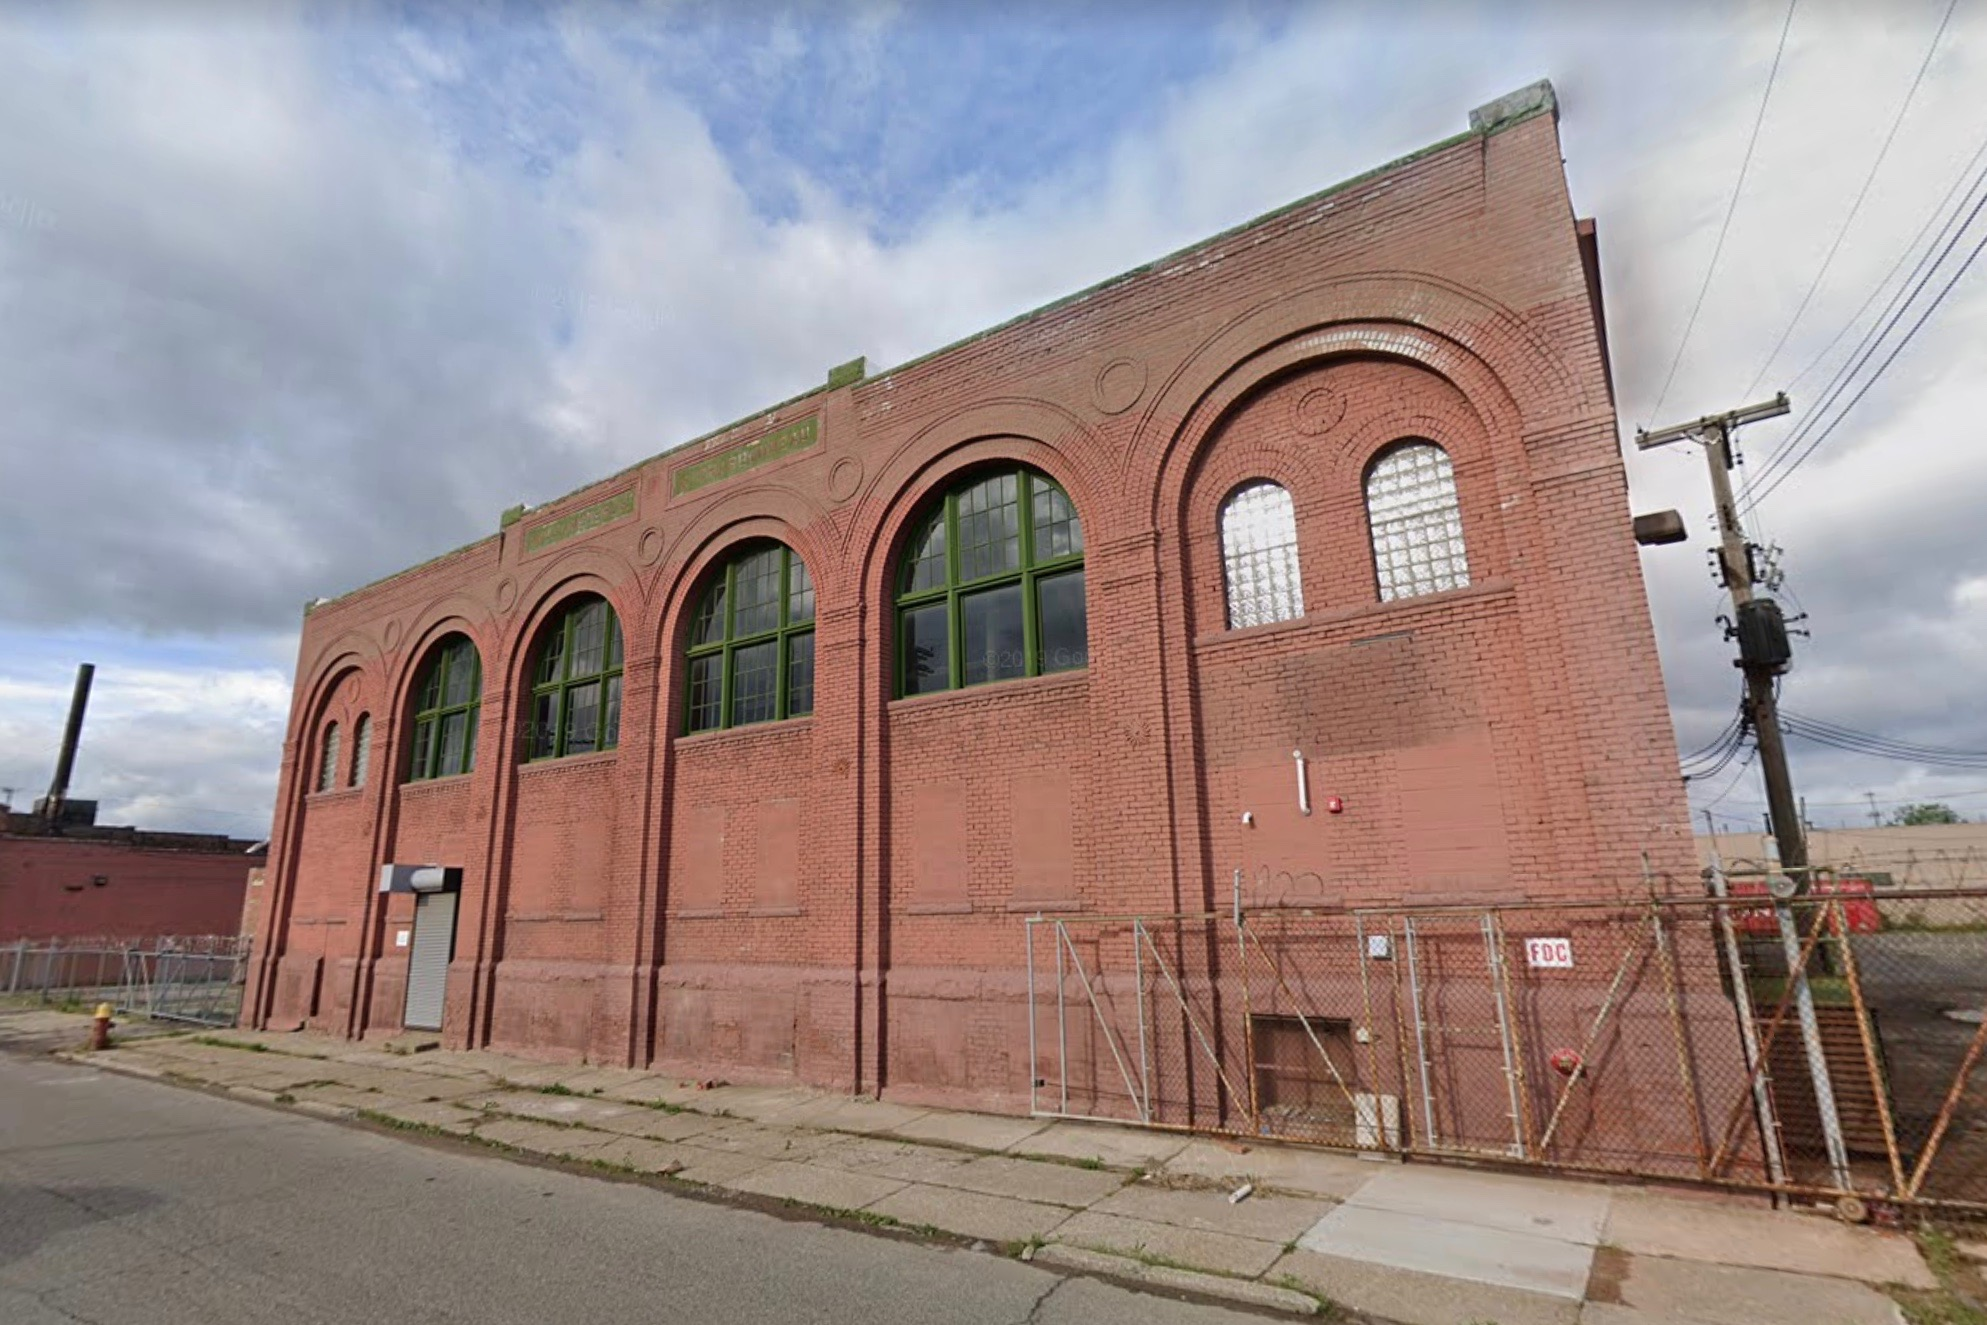 A red brick building with arched windows on the second floor.